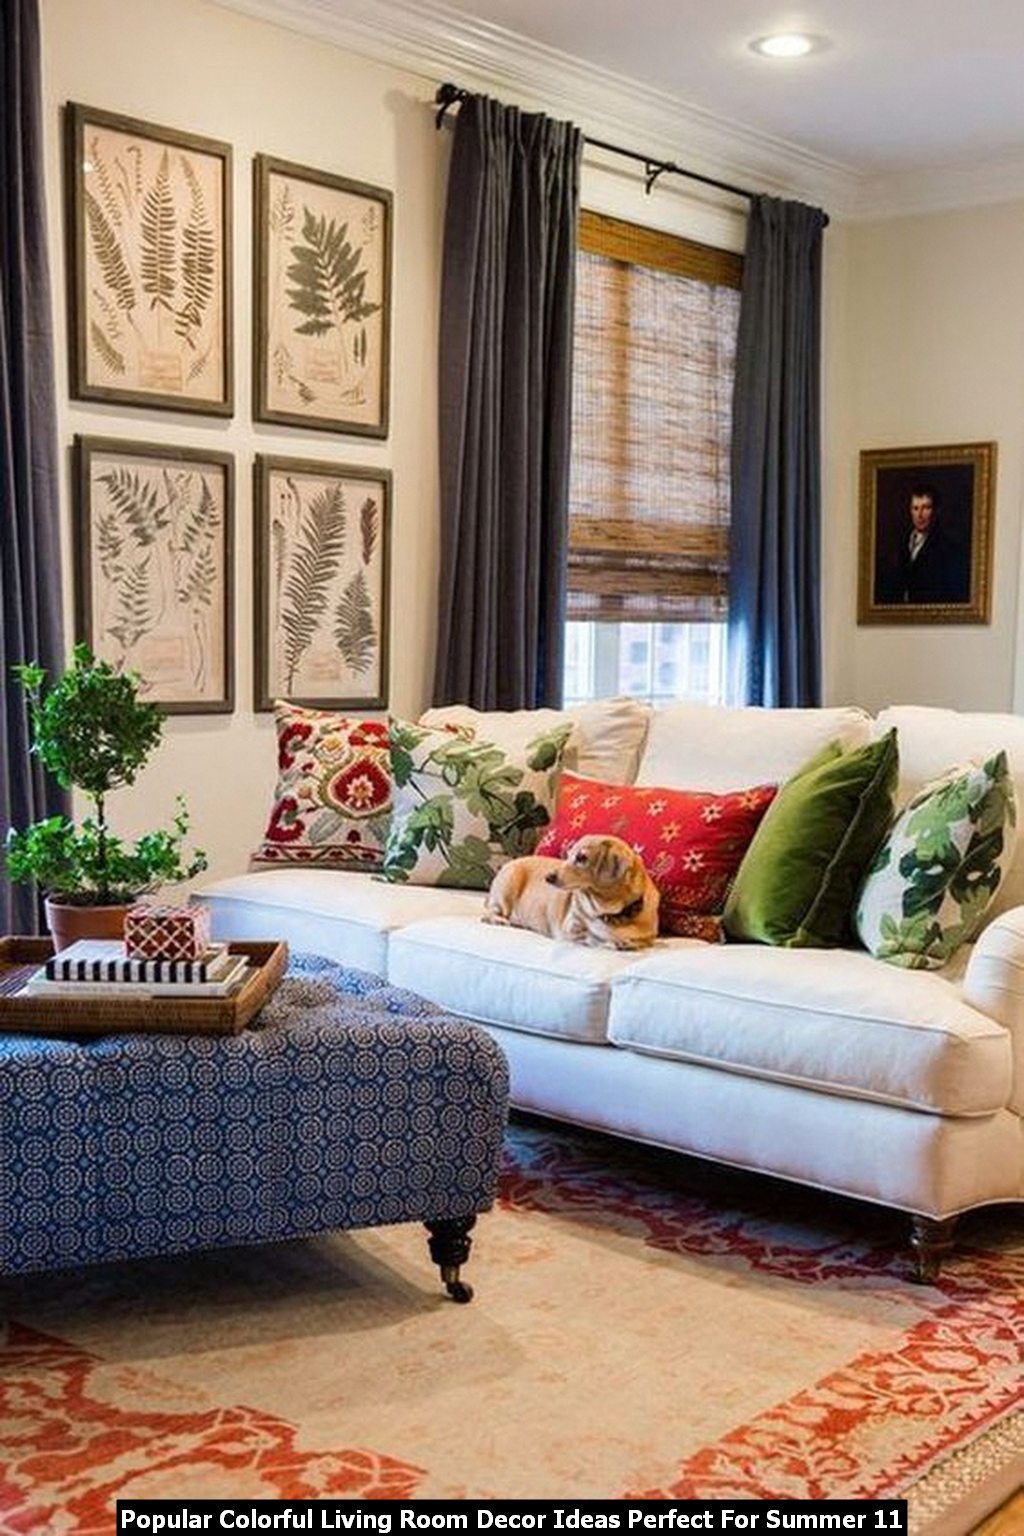 Popular Colorful Living Room Decor Ideas Perfect For Summer 11